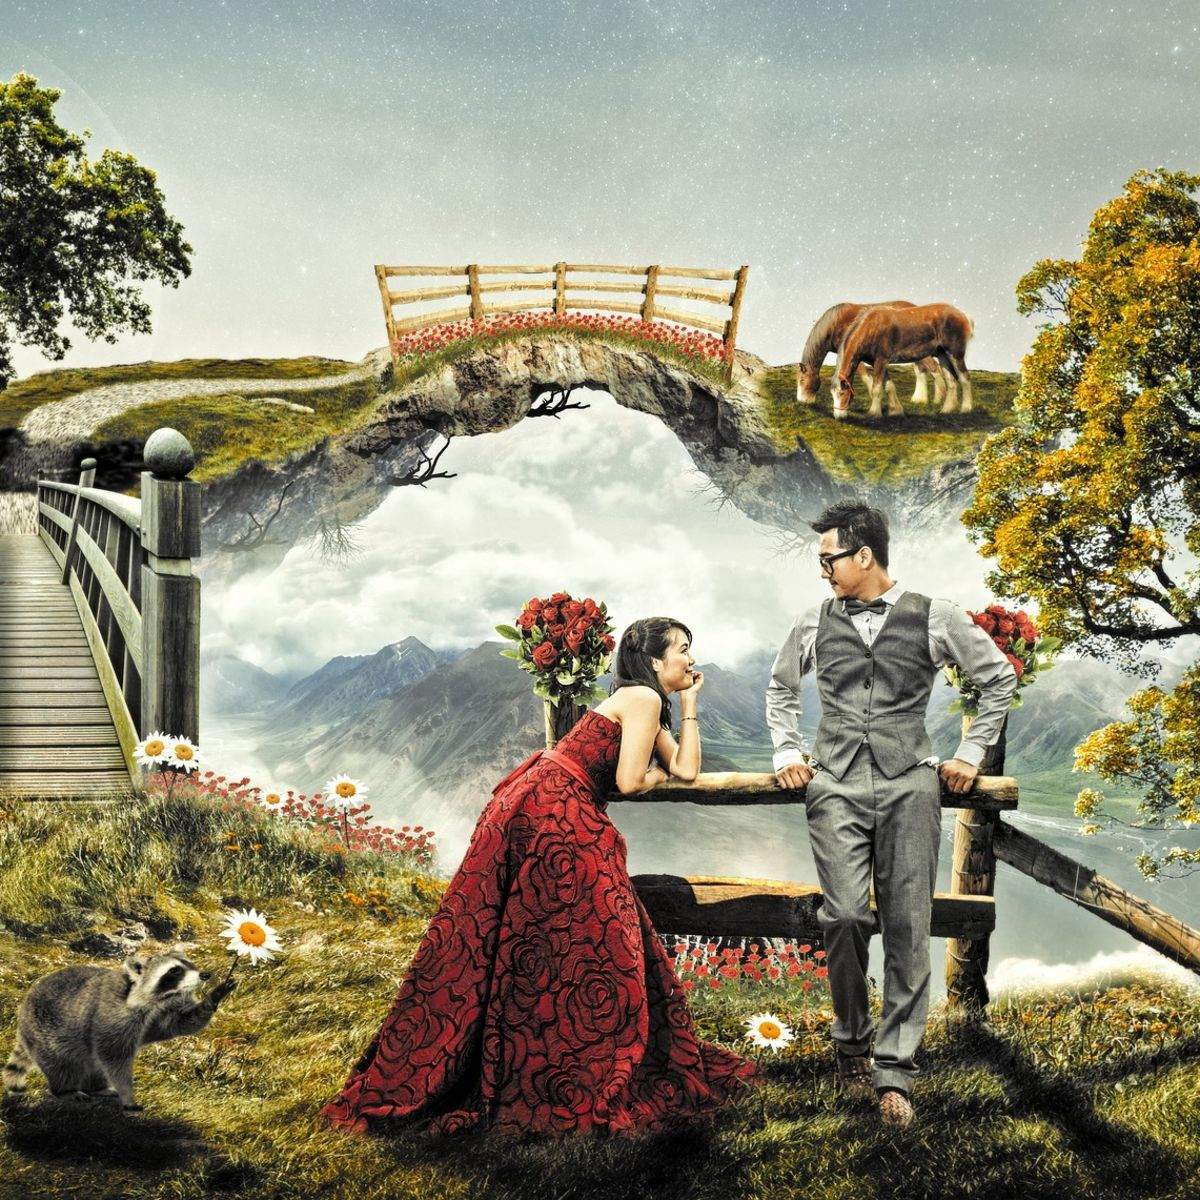 Couple in a fantasy dreamy magical landscape with trees and moon